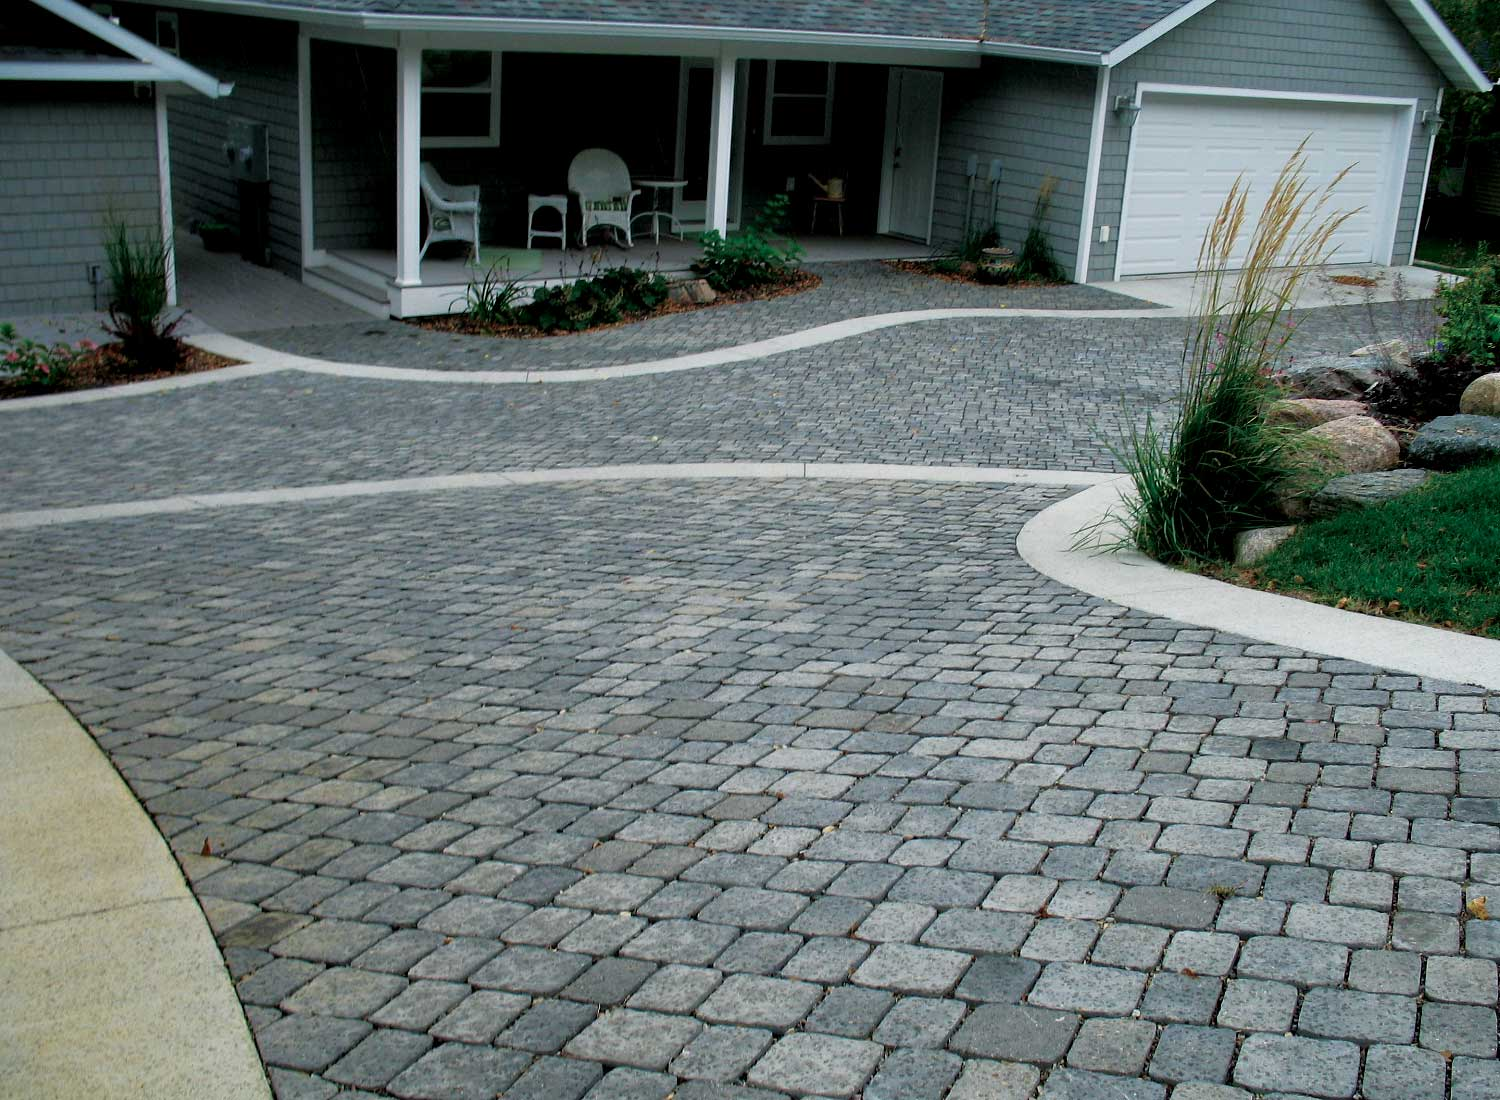 Permeable Paver Welcome To Londonstone Londonpaver And